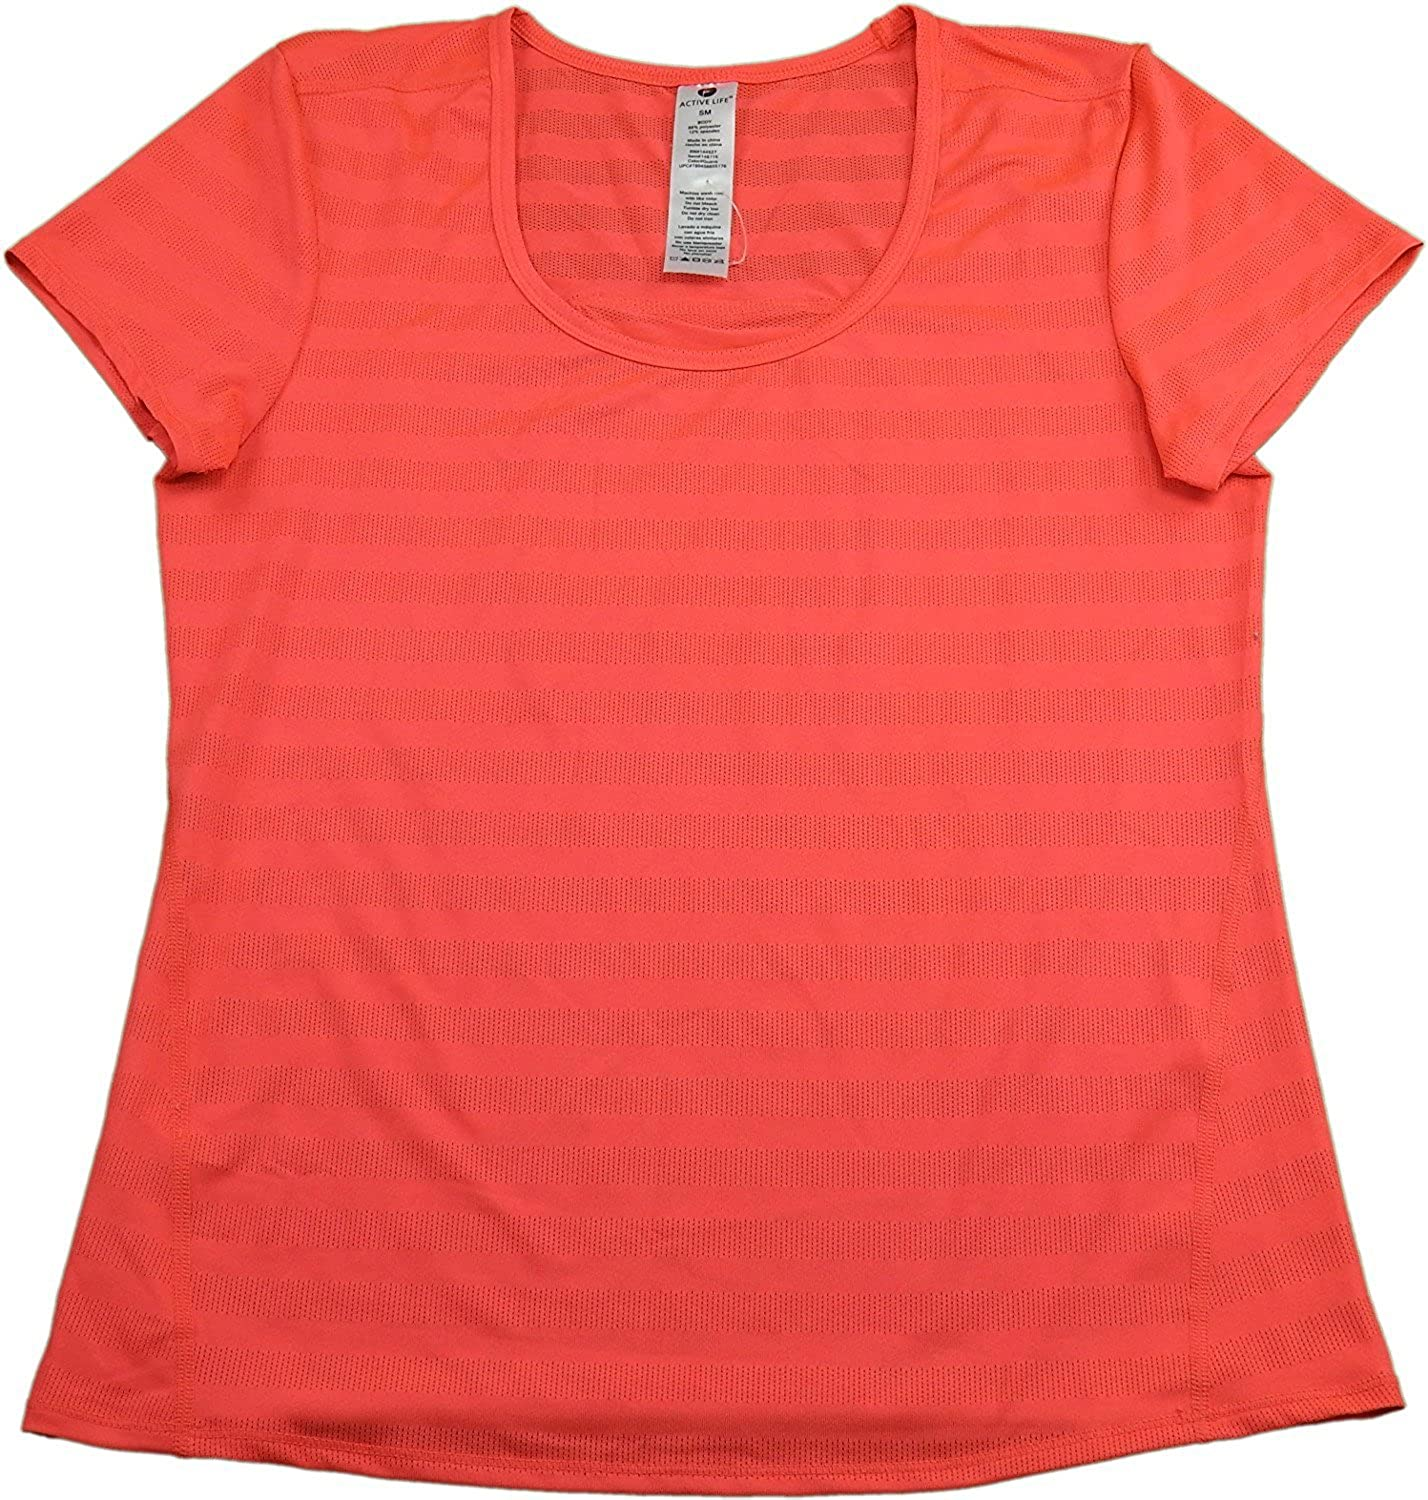 Active Life Ladies Performance Moisture Wicking Shirt, Guave